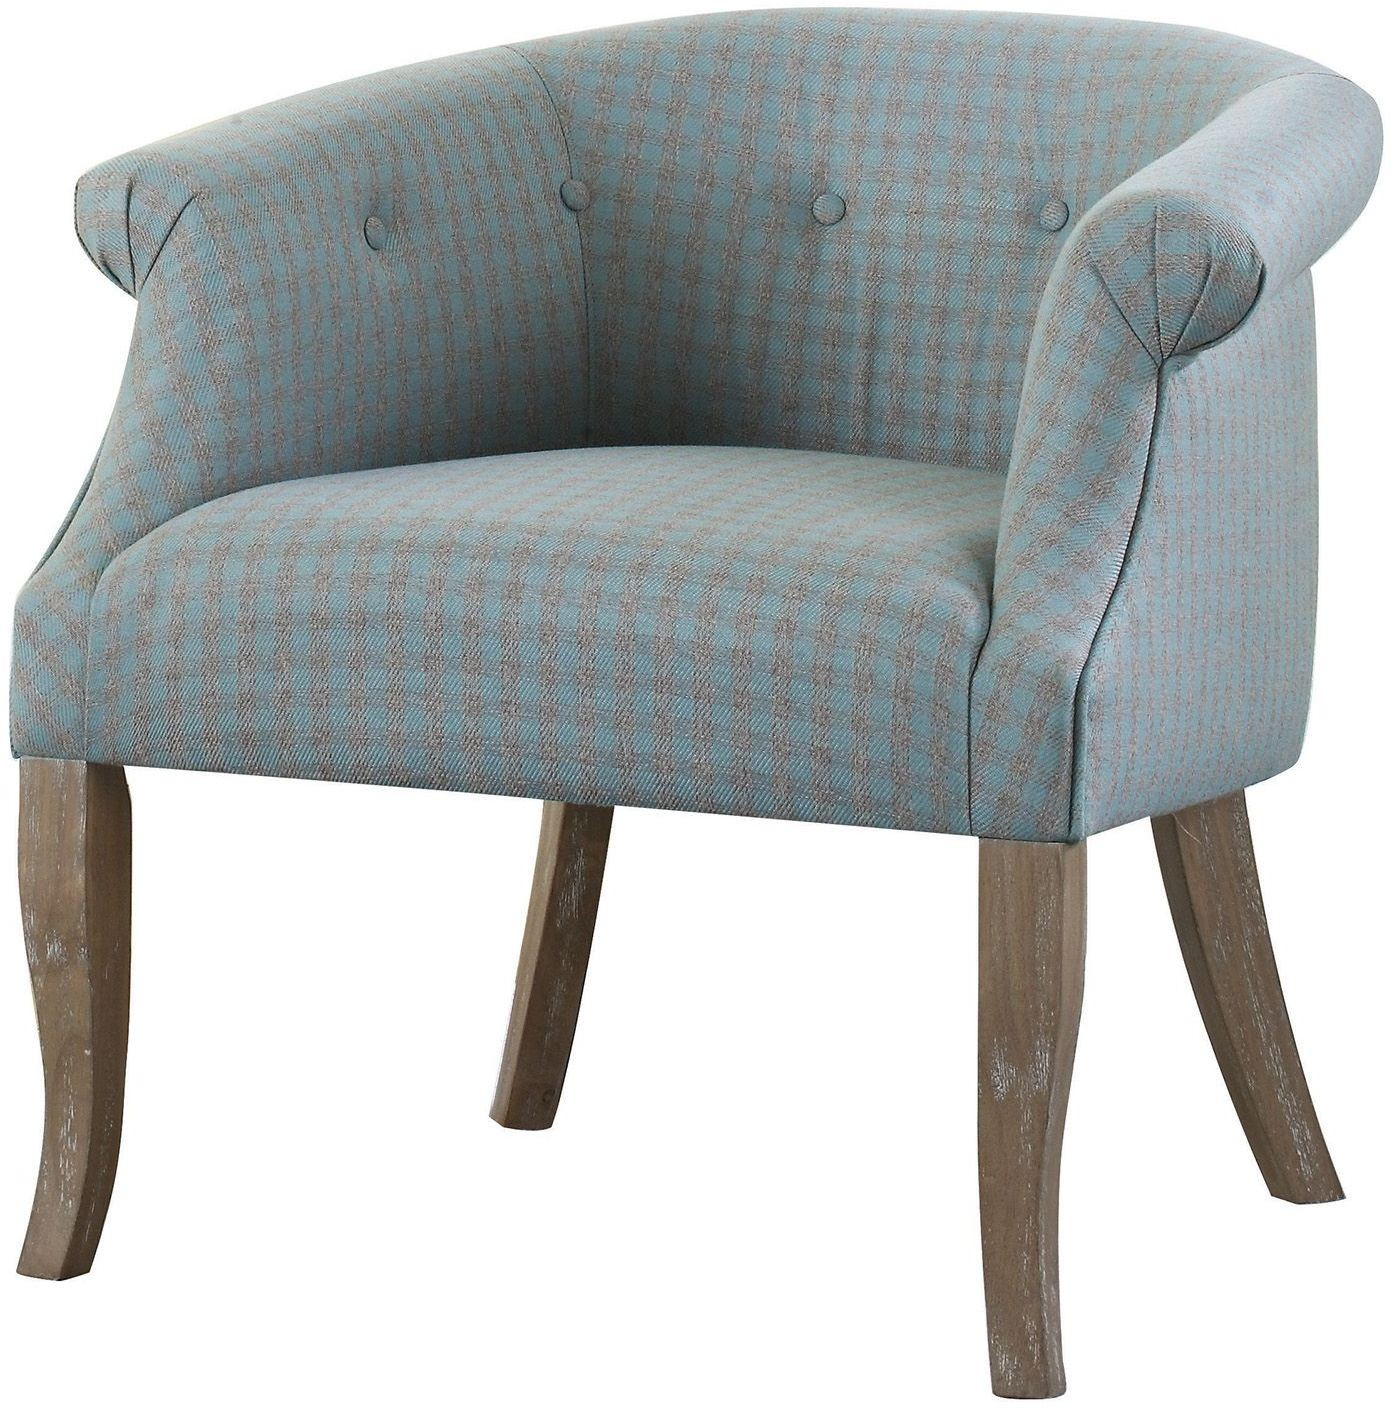 Light Blue And Gray Accent Chair From Coaster